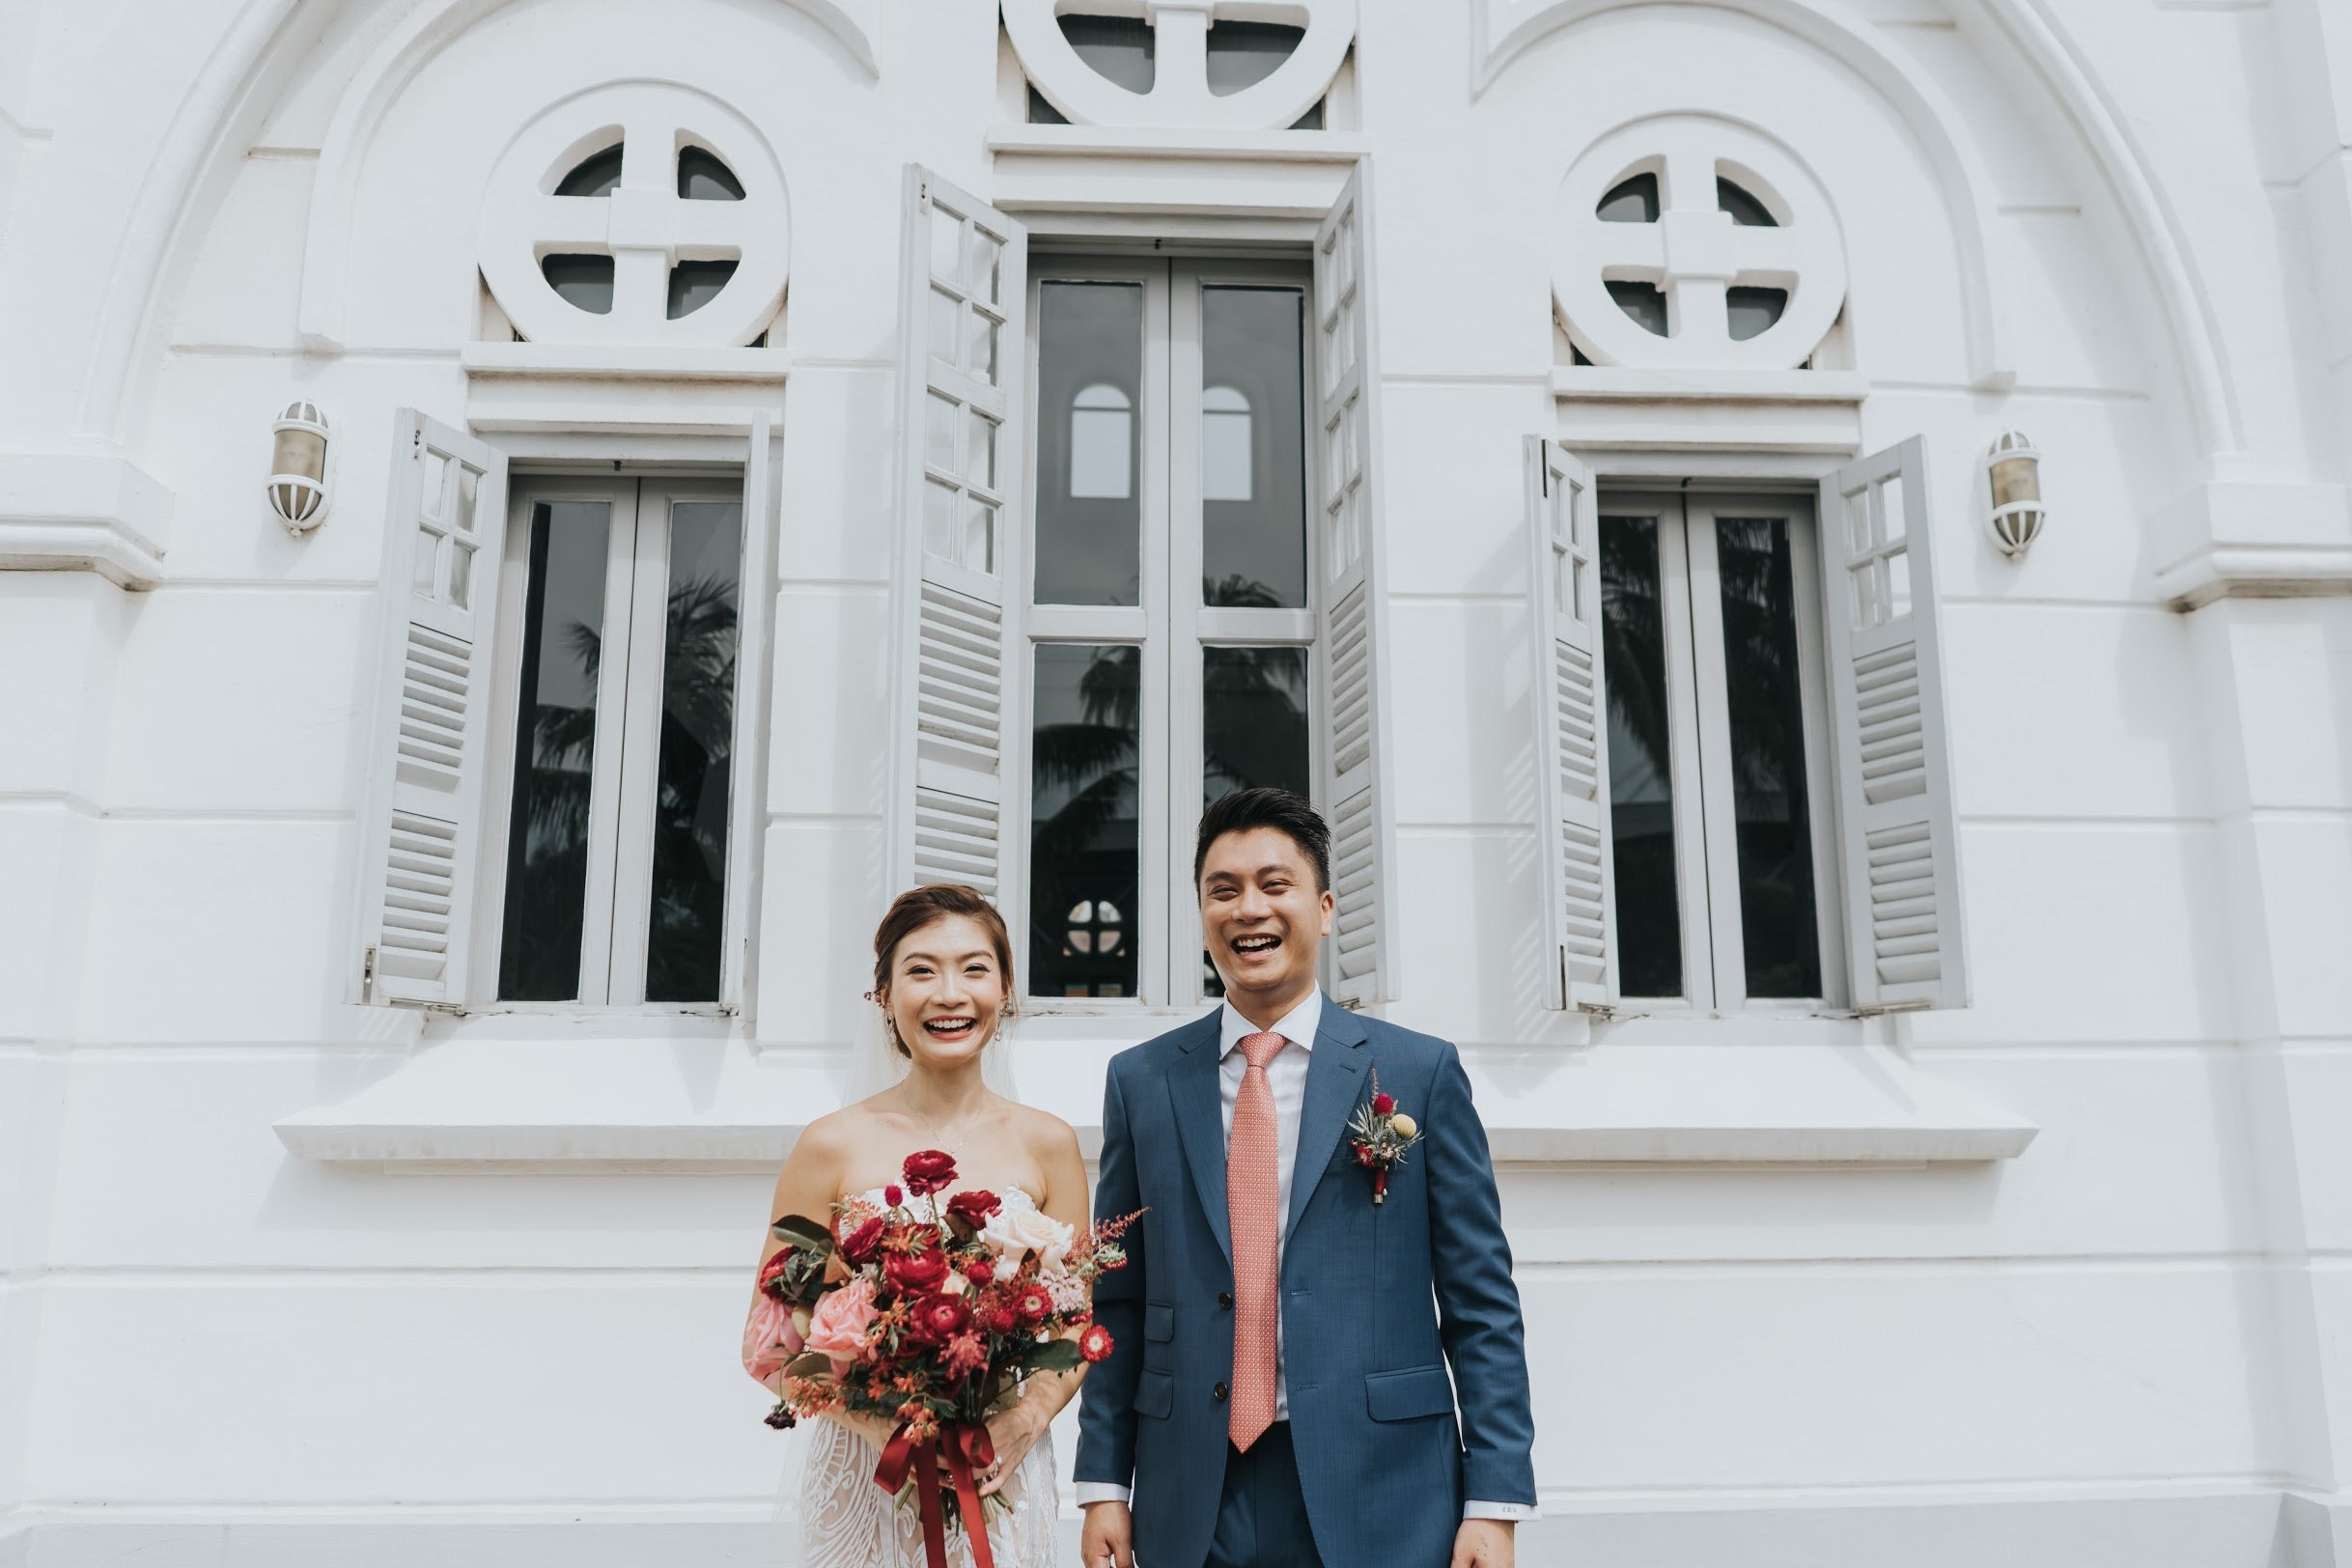 Beaming couple for afternoon wedding shoot outside beautiful louvre windows